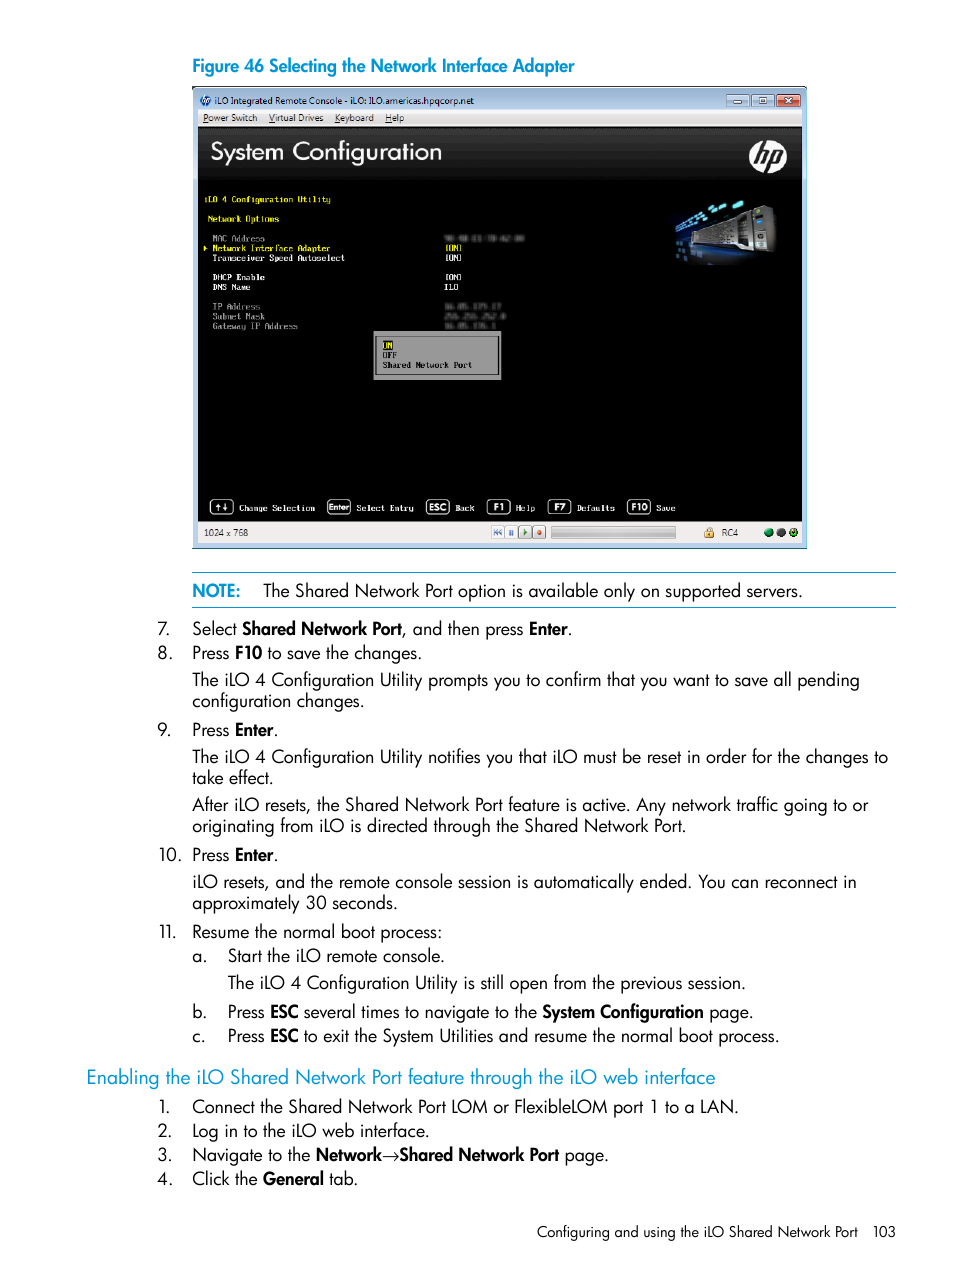 Enabling the ilo shared network port feature | HP Integrated